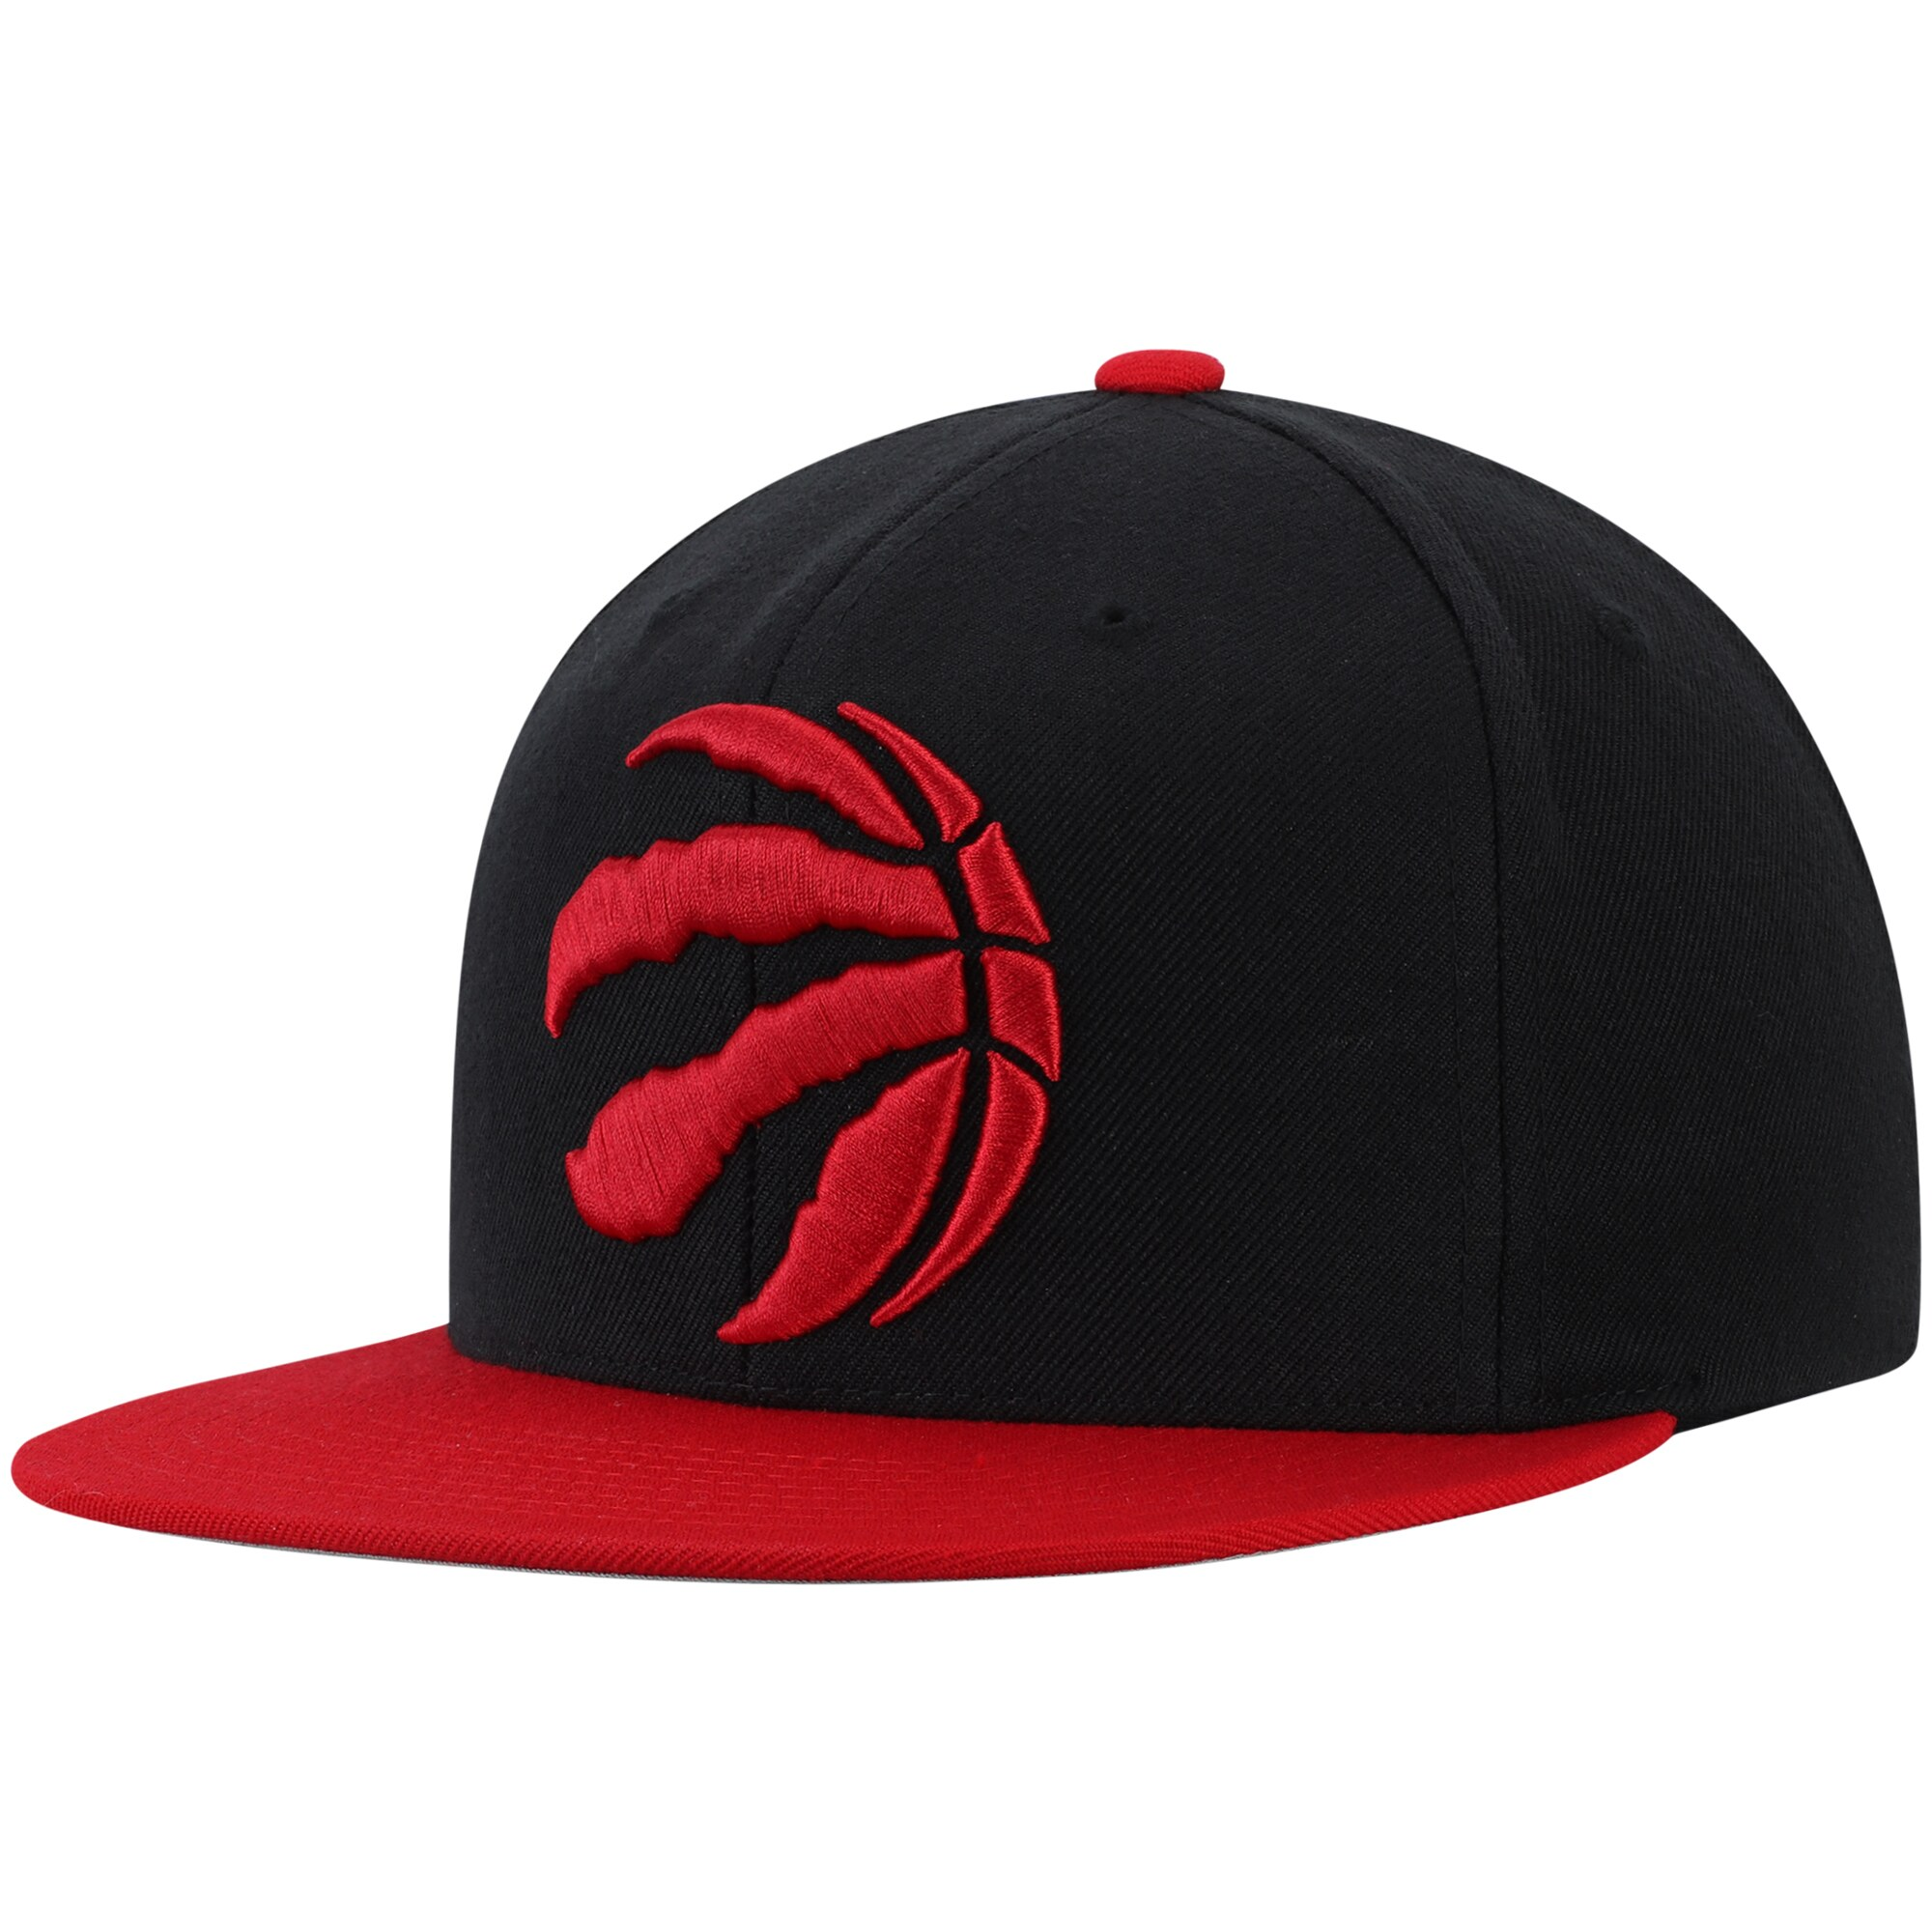 Toronto Raptors Mitchell & Ness Two-Tone Wool Snapback Hat - Black/Red